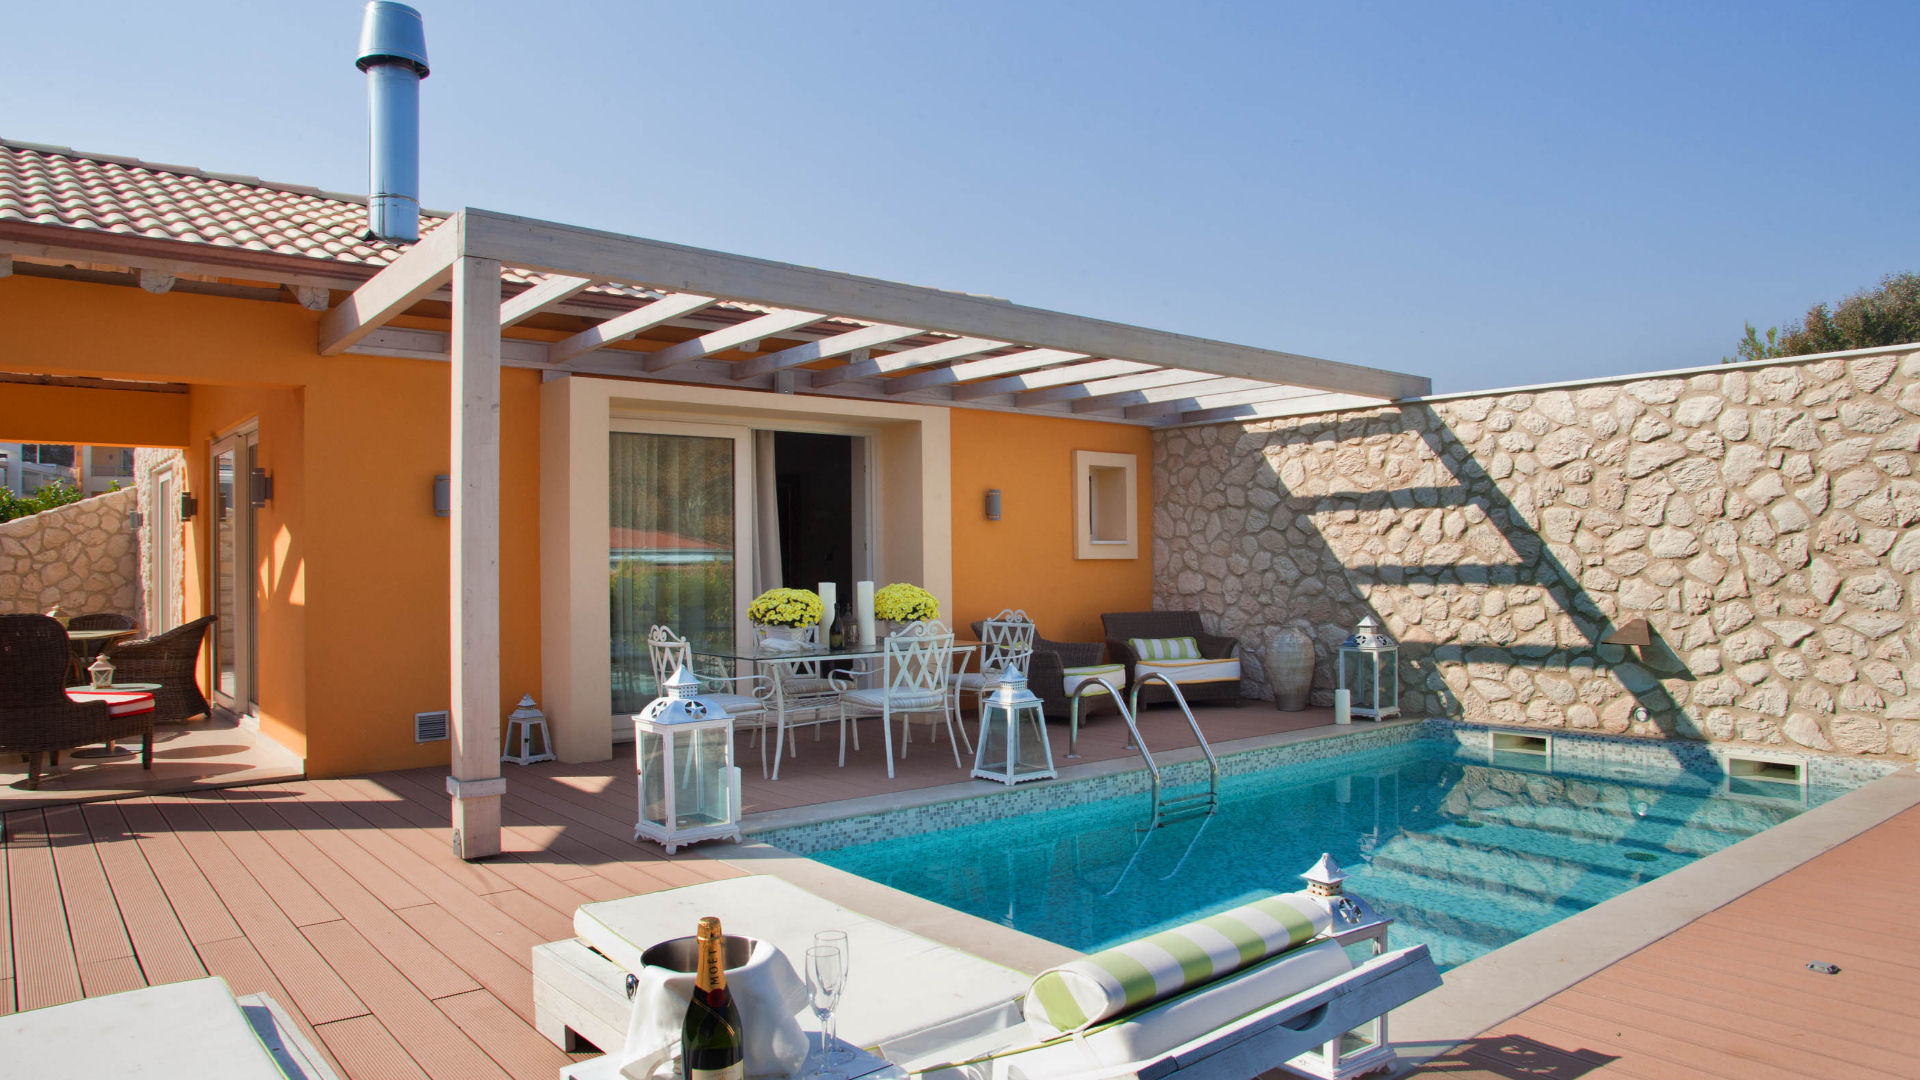 VIP Executive Villa with Jacuzzi/Hot Tub and Private Pool